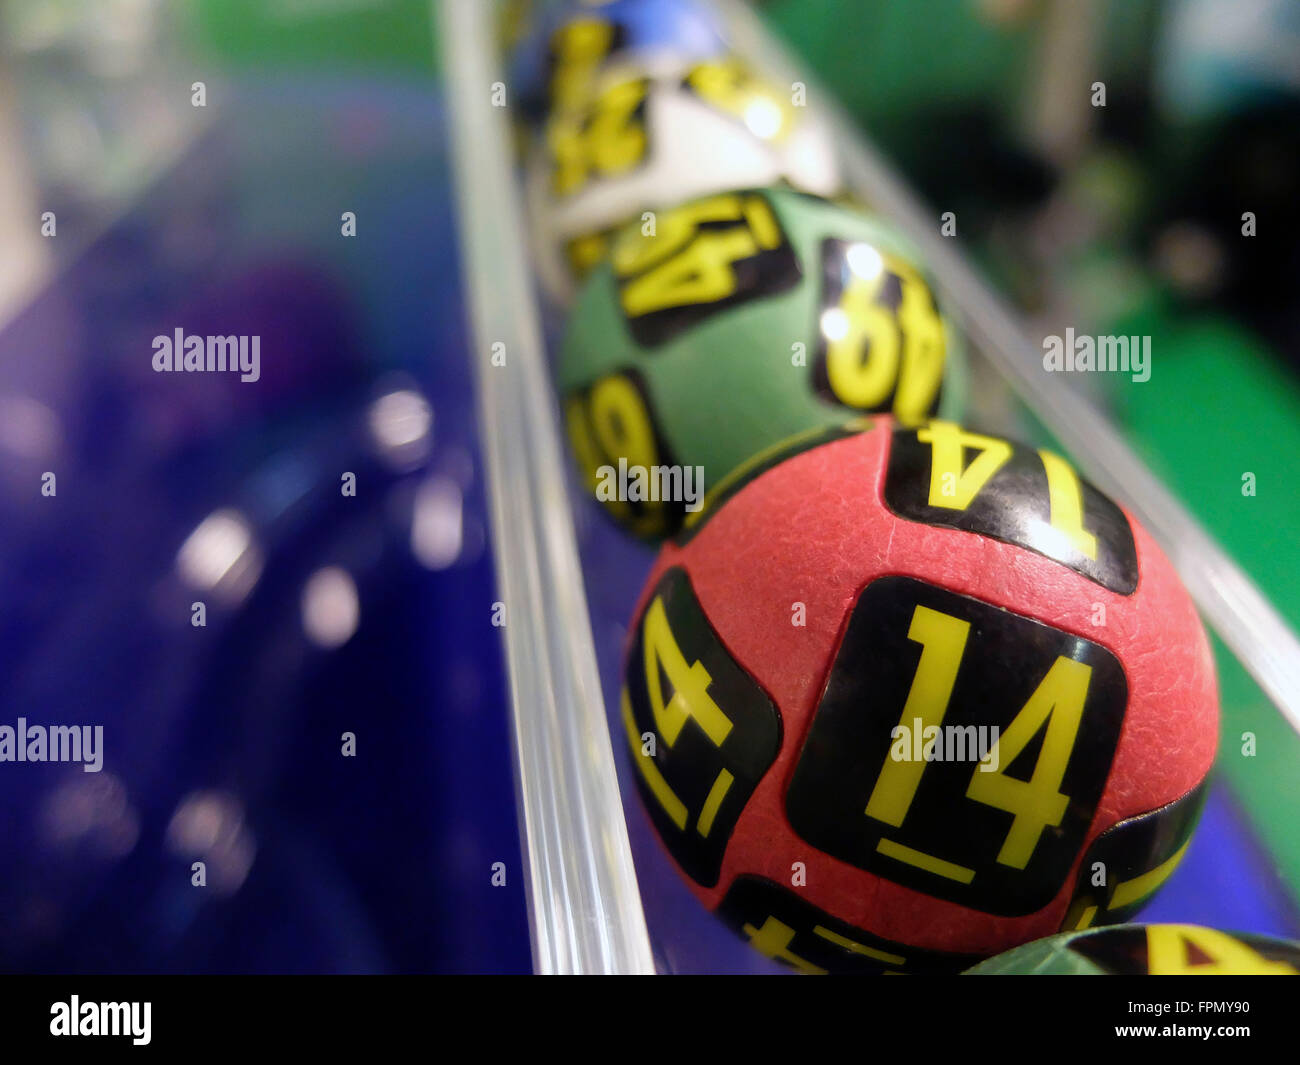 Image of lottery balls during extraction of the winning numbers. - Stock Image